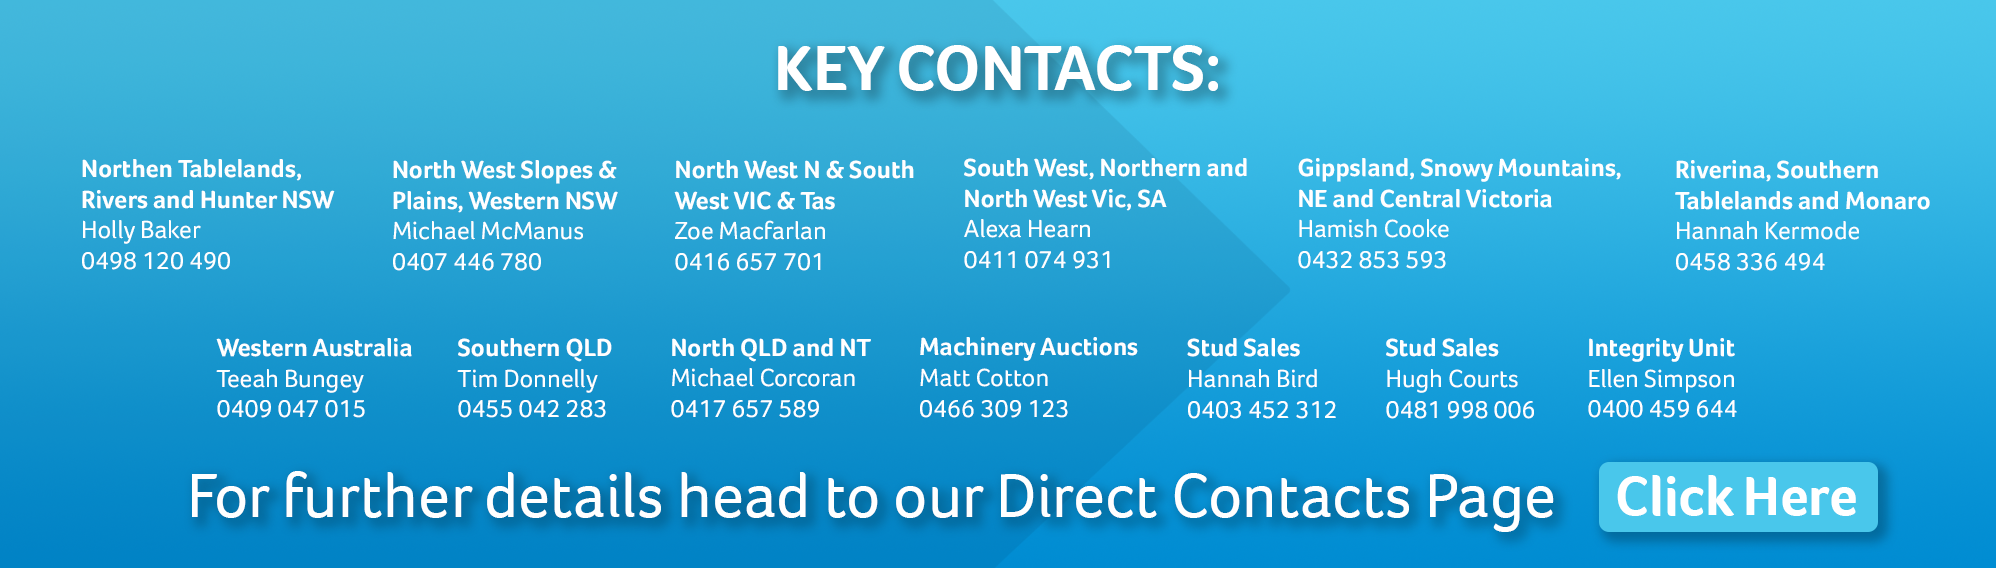 Direct Contacts Page